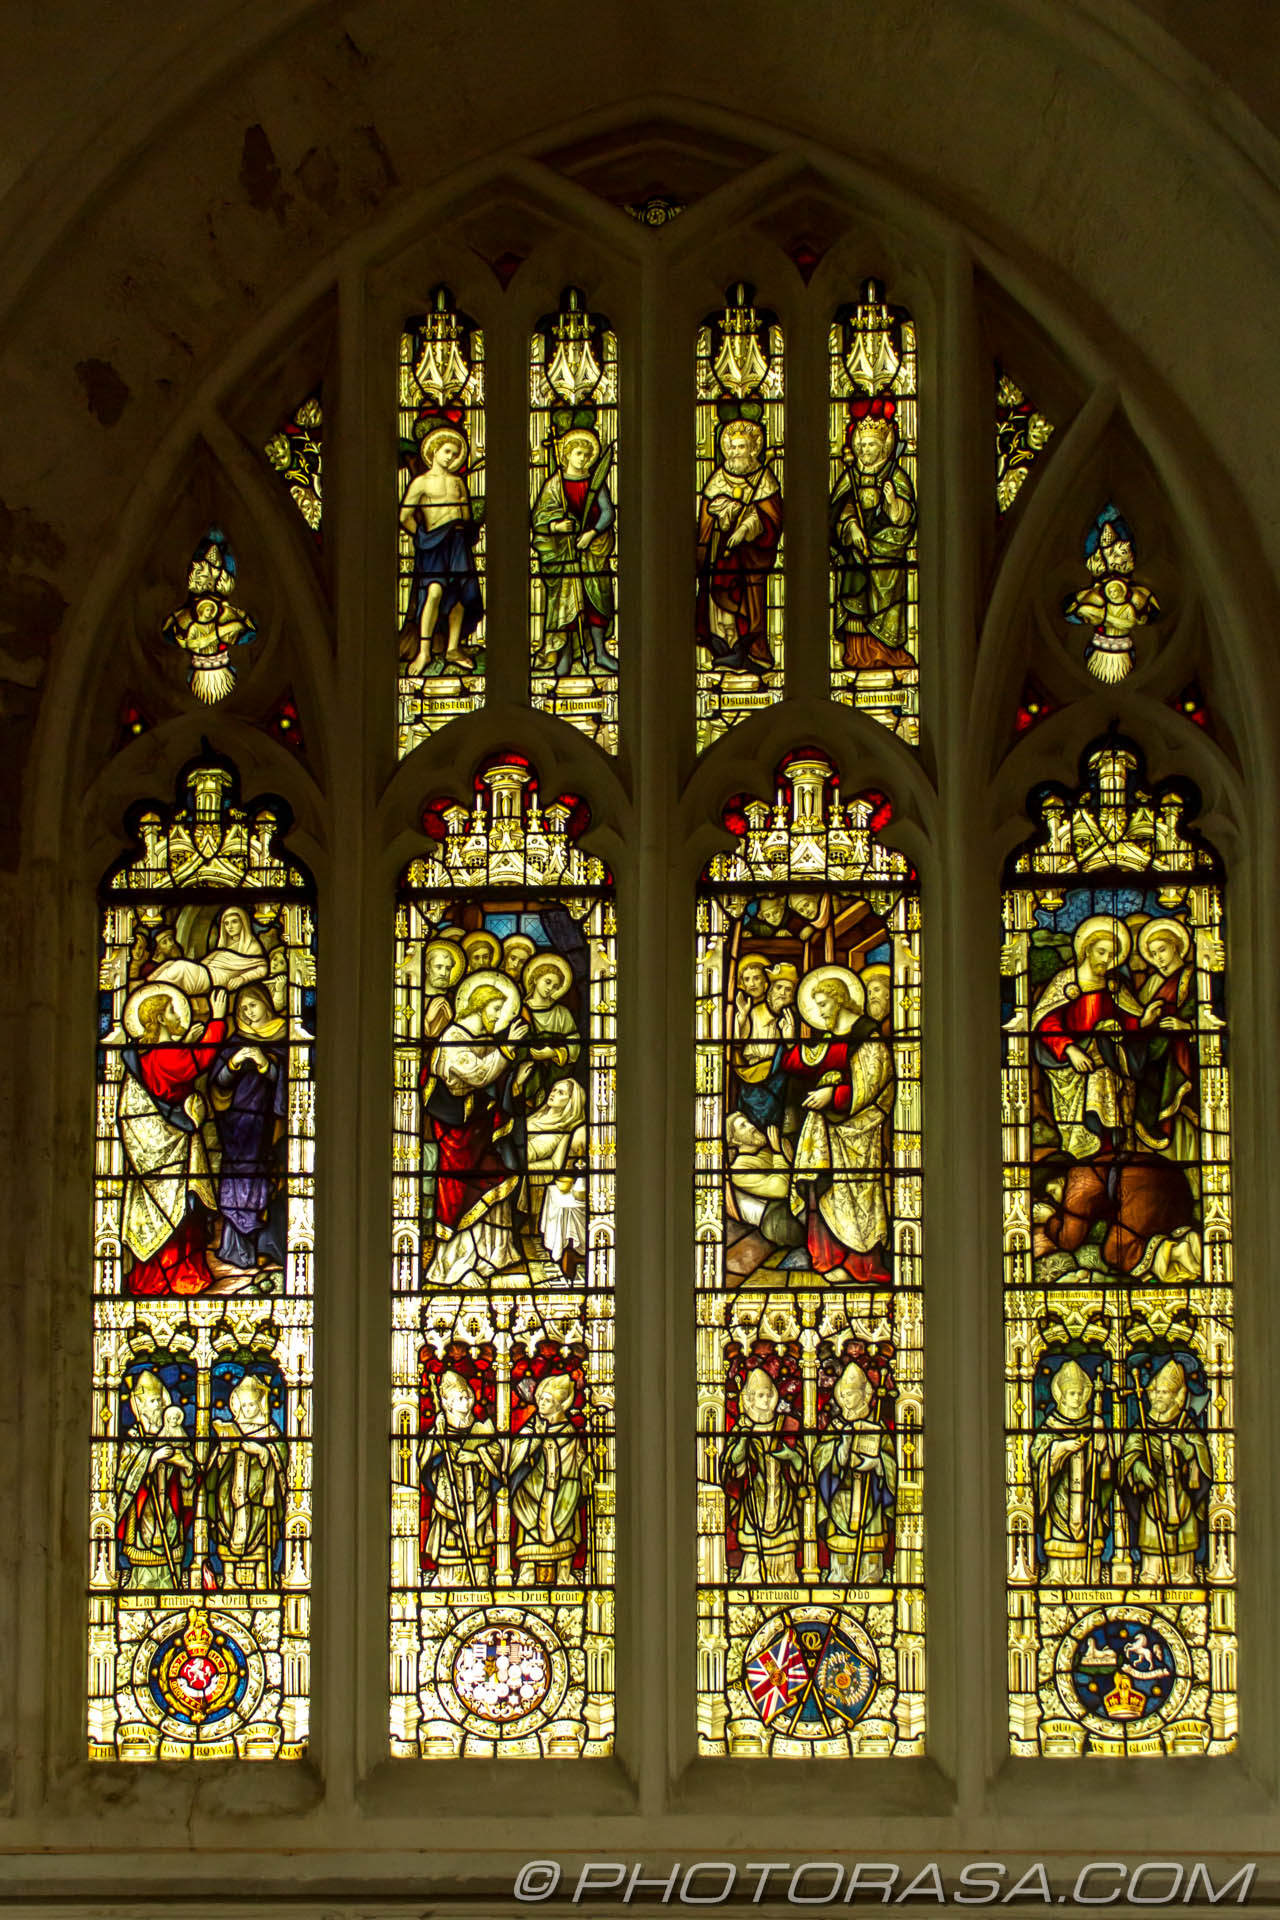 https://photorasa.com/inside-all-saints-church-in-maidstone/stained-glass-by-the-north-aisle/